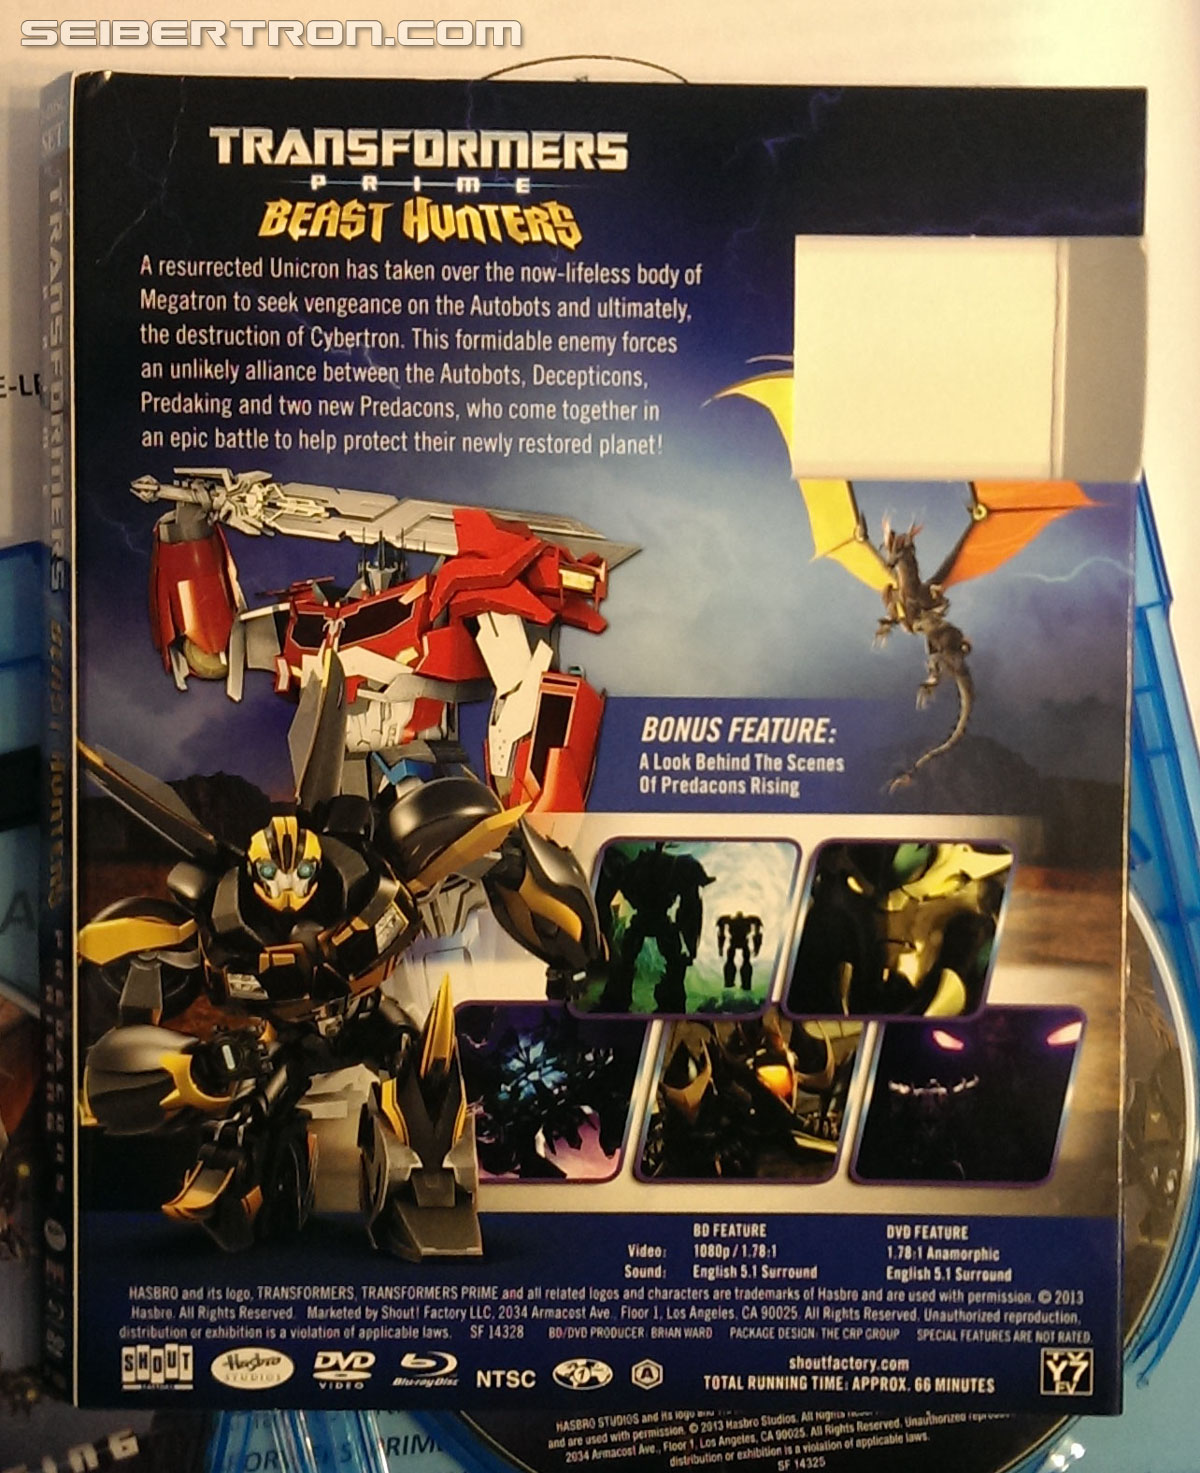 Transformers News: Menu video and in-hand pictures of Transformers Prime Beast Hunters Predacons Rising Blu-Ray